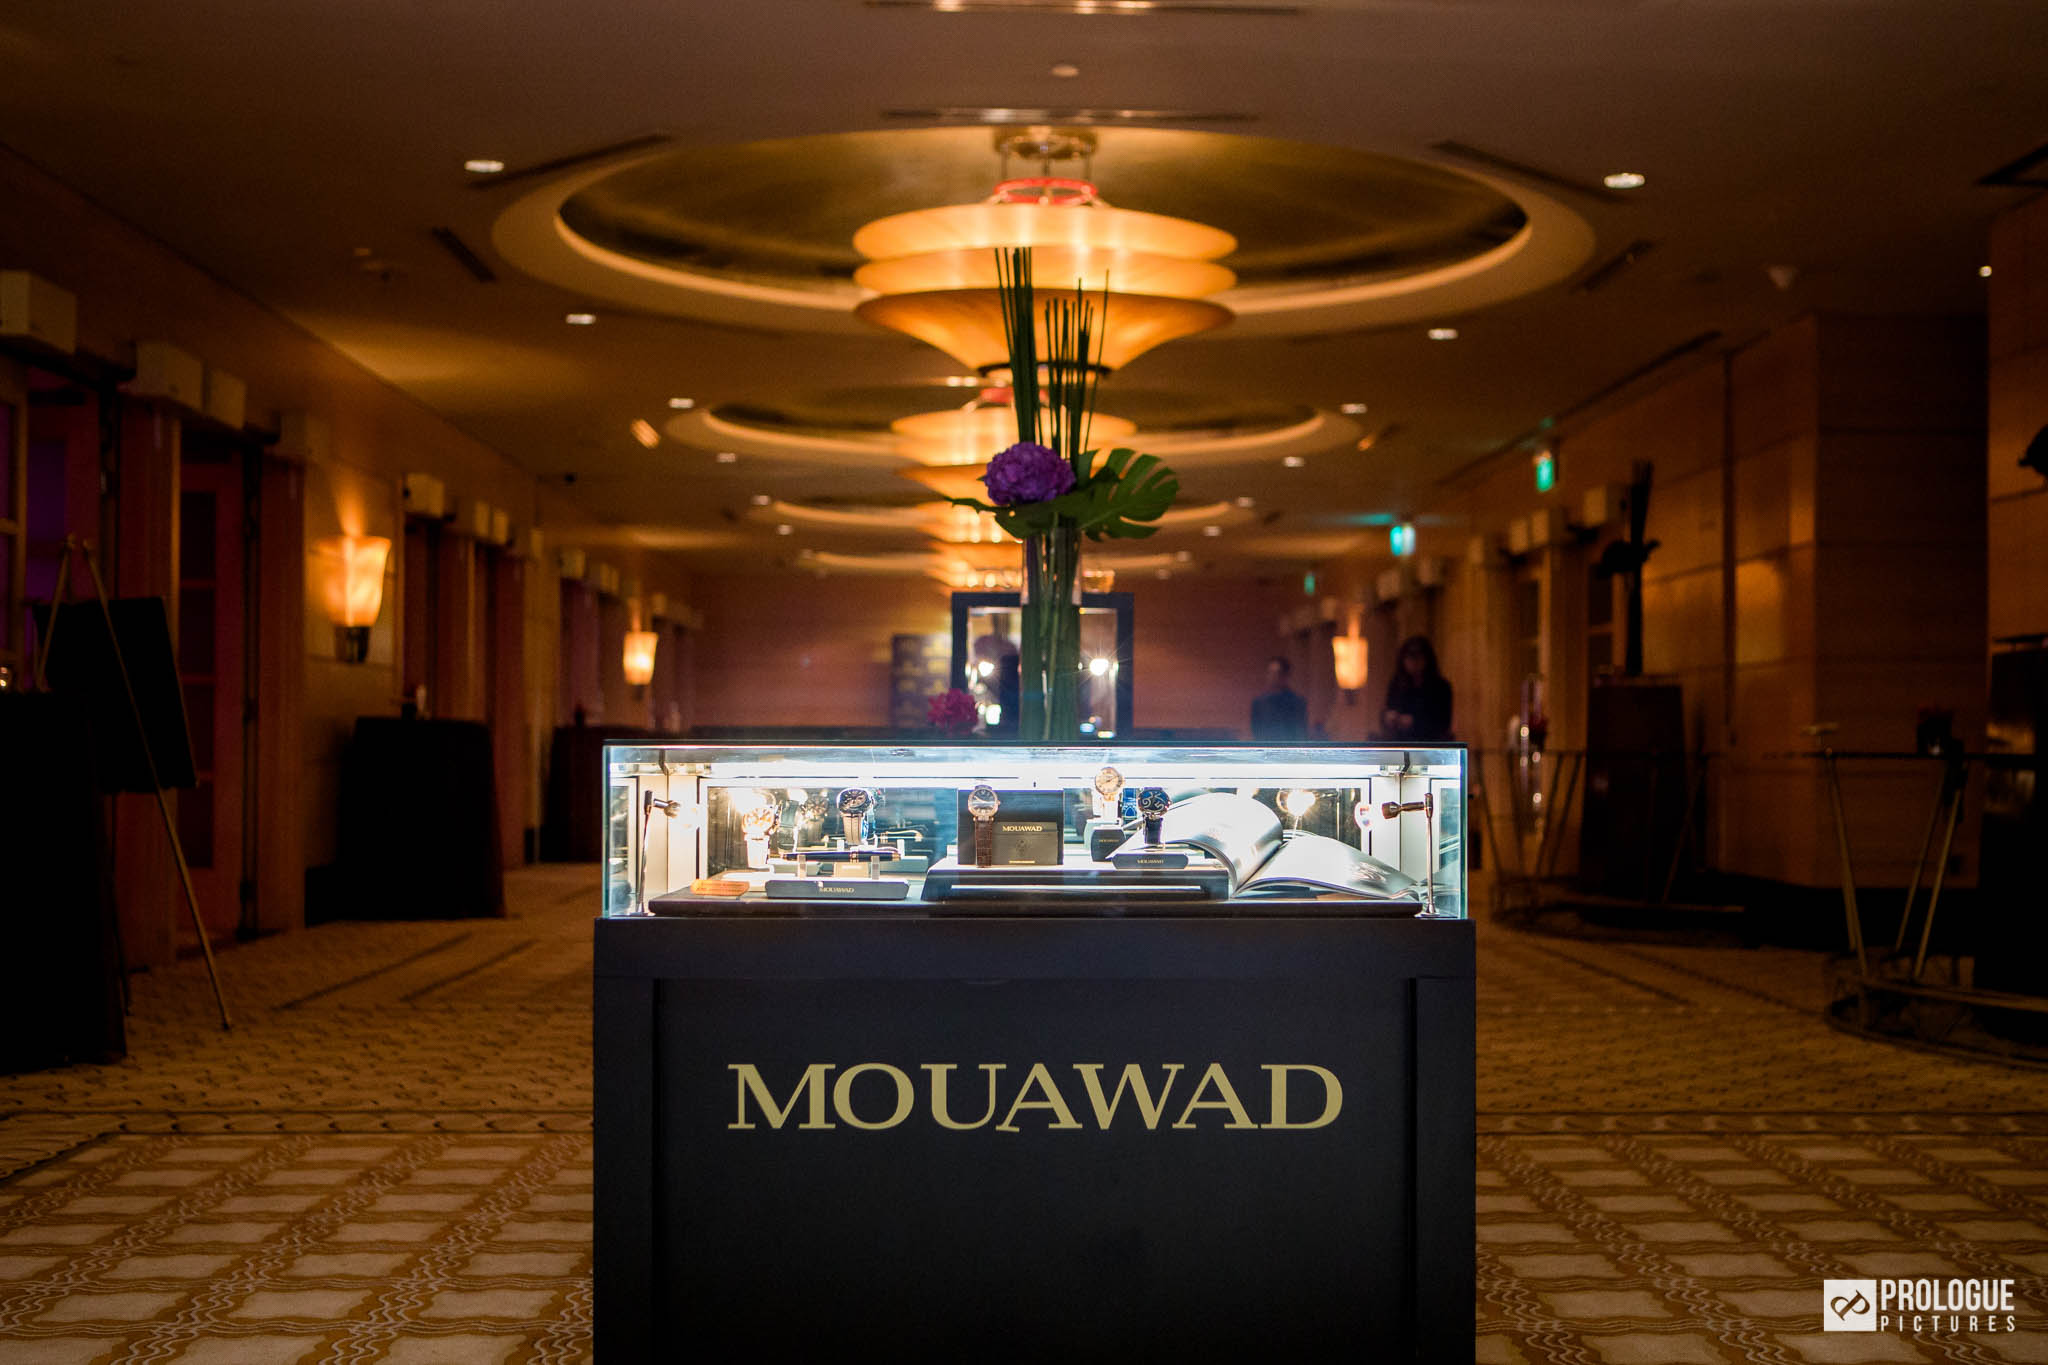 mouawad-125th-anniversary-event-photography-singapore-prologue-pictures-02